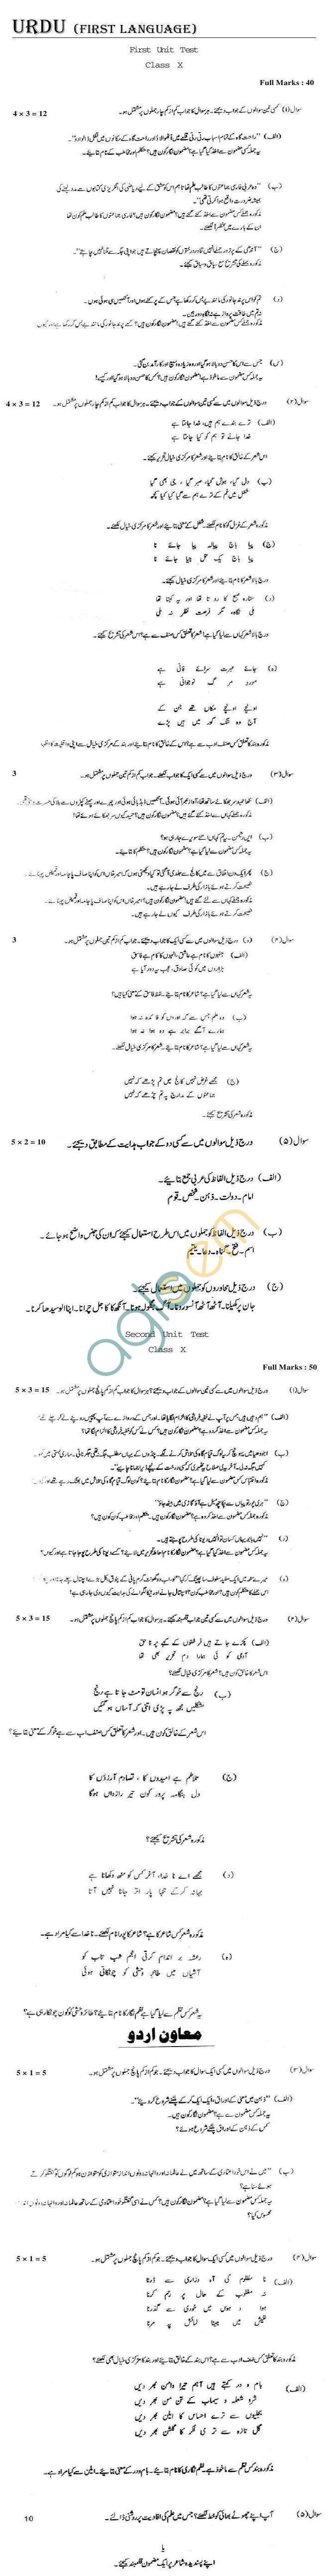 WB Board Sample Question Papers for Madhyamik Pariksha (Class 10) - Urdu